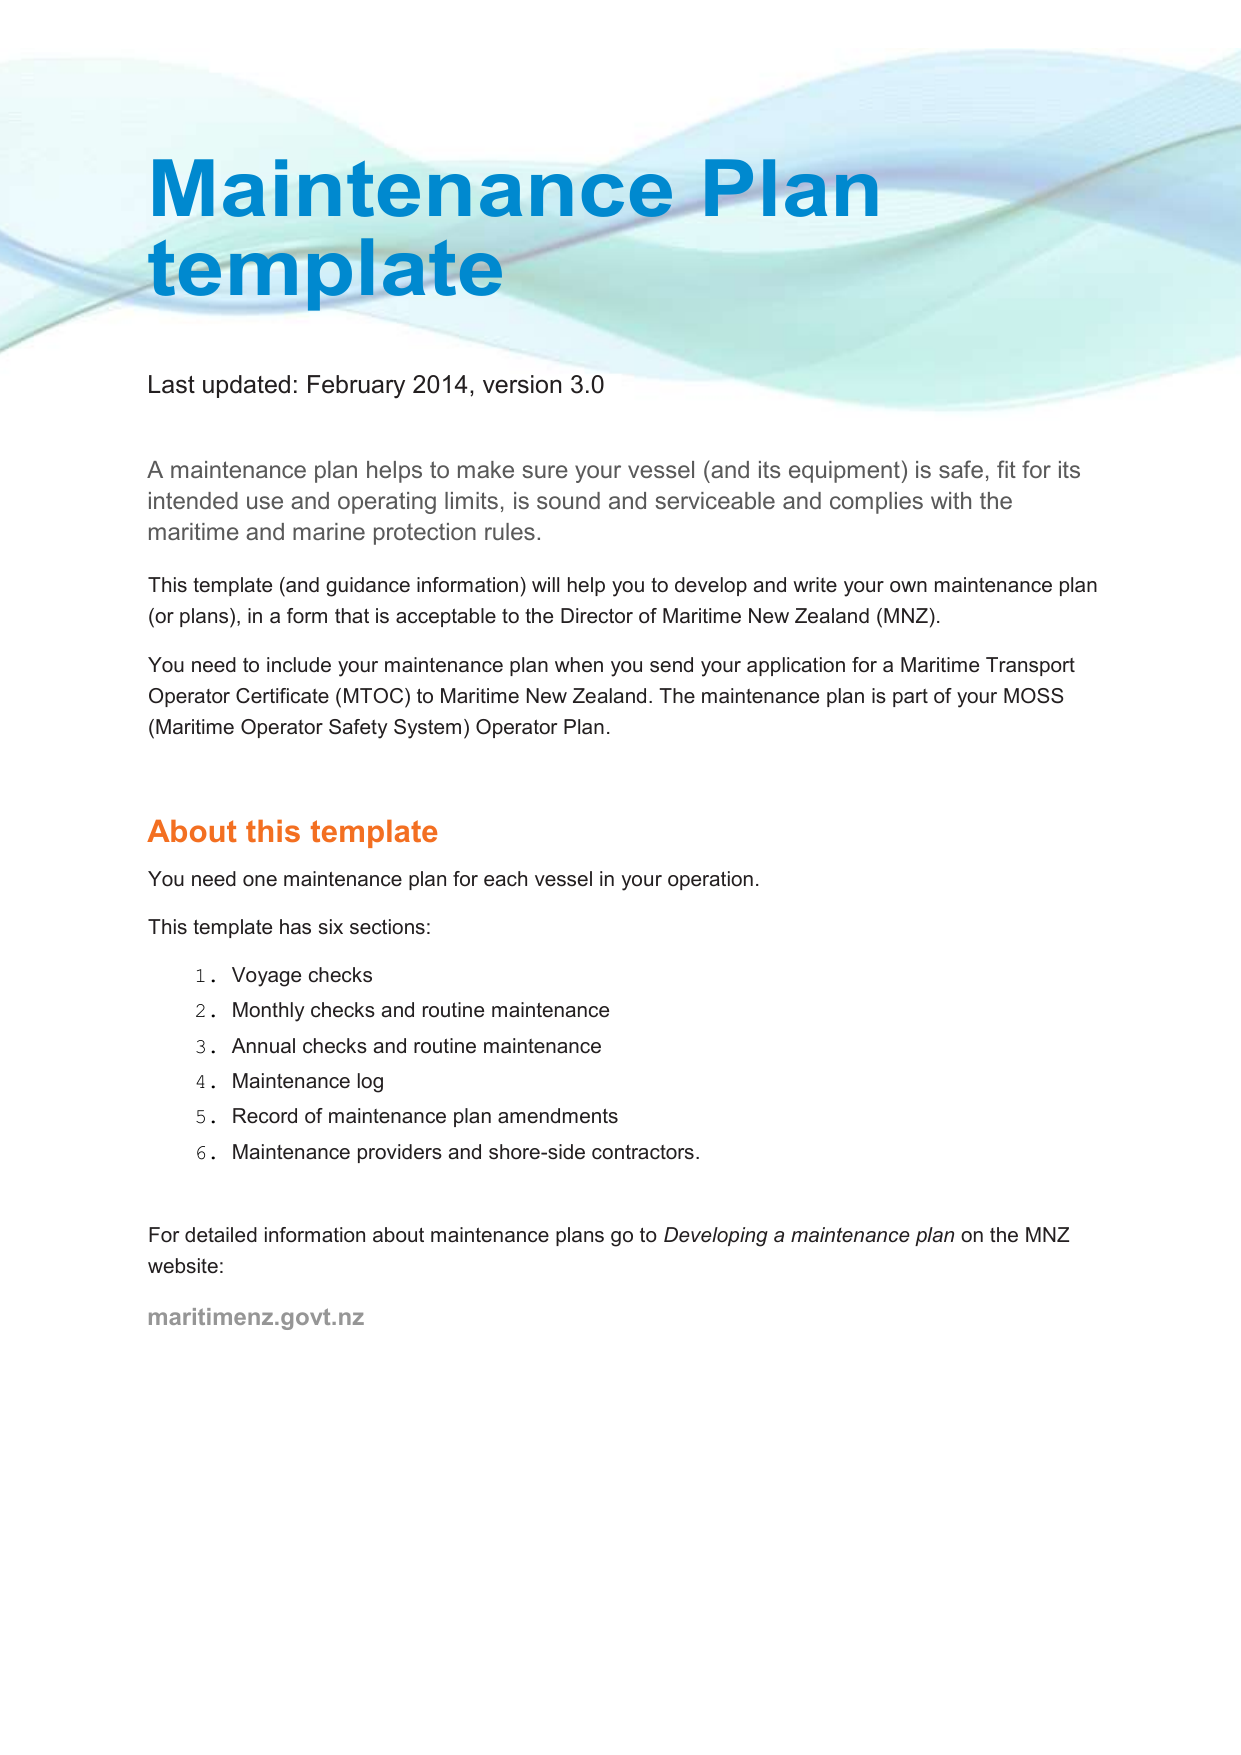 Maintenance Plan template